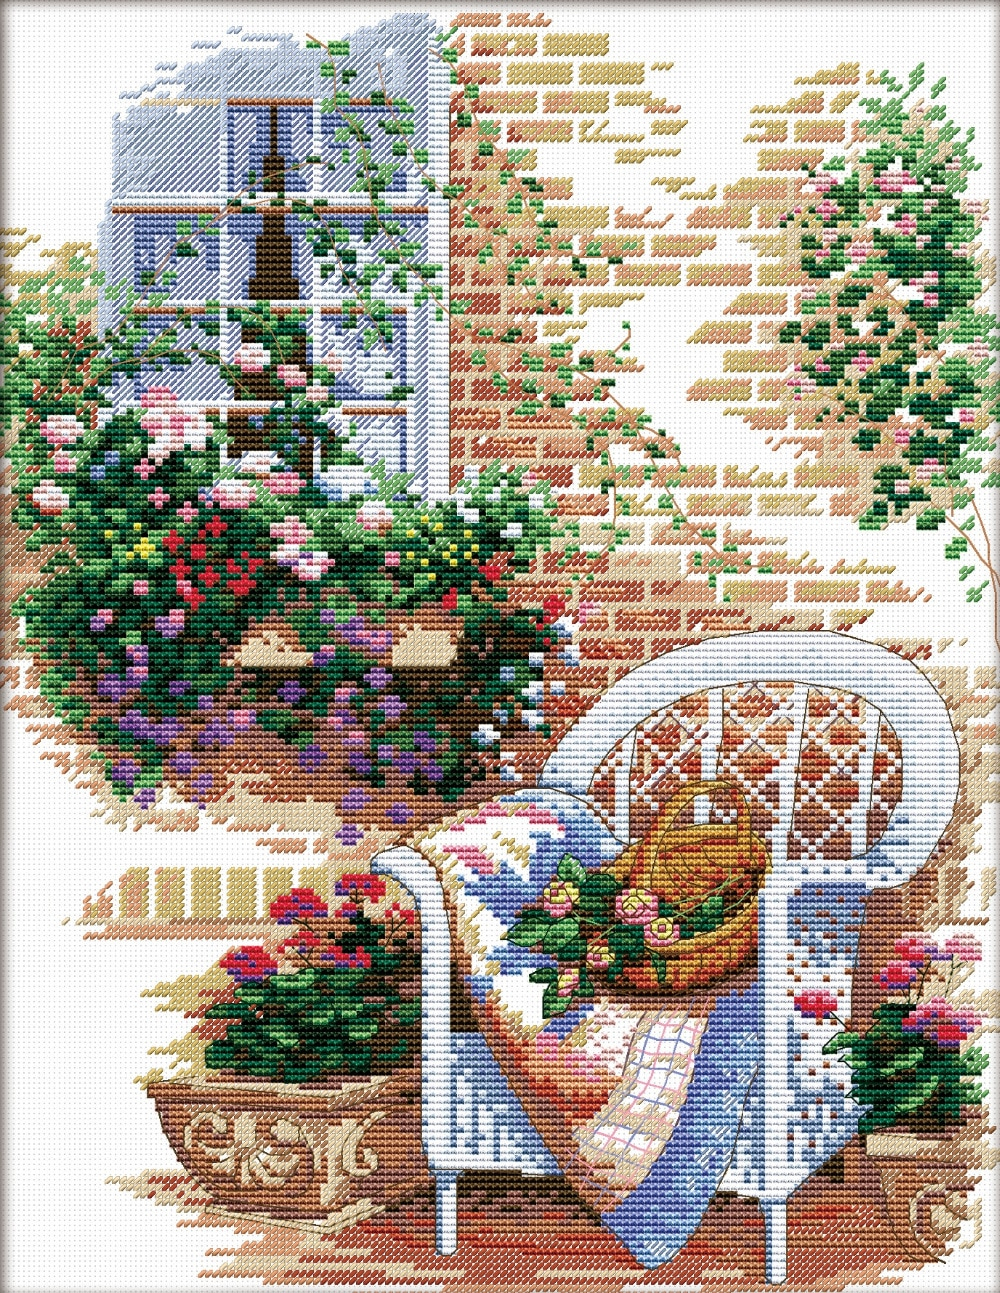 Stamped Embroidery Patterns Us 1199 40 Offstamped Counted Cross Stitch Patterns Flowering Windowsill Embroidery Kits 11ct Cotton Thread Painting Diy Needlework Home Decor In